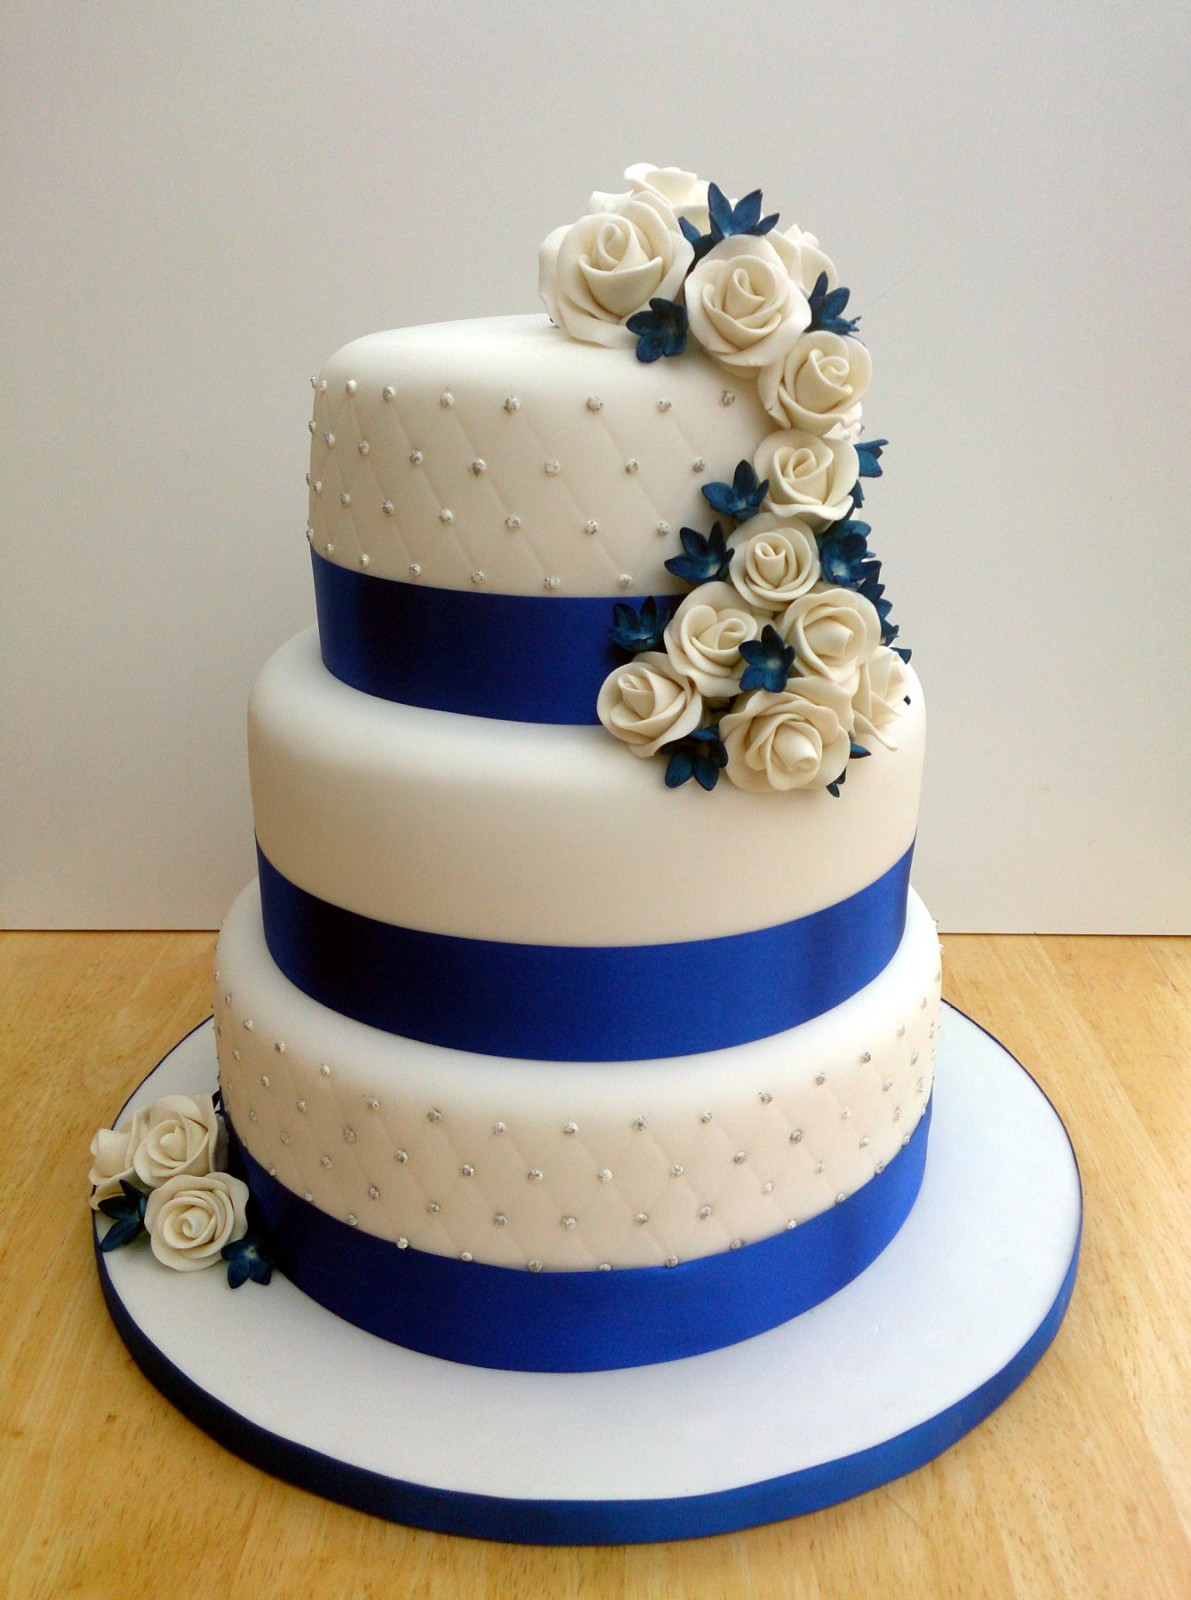 3 Tier Wedding Cake with Blue Flowers